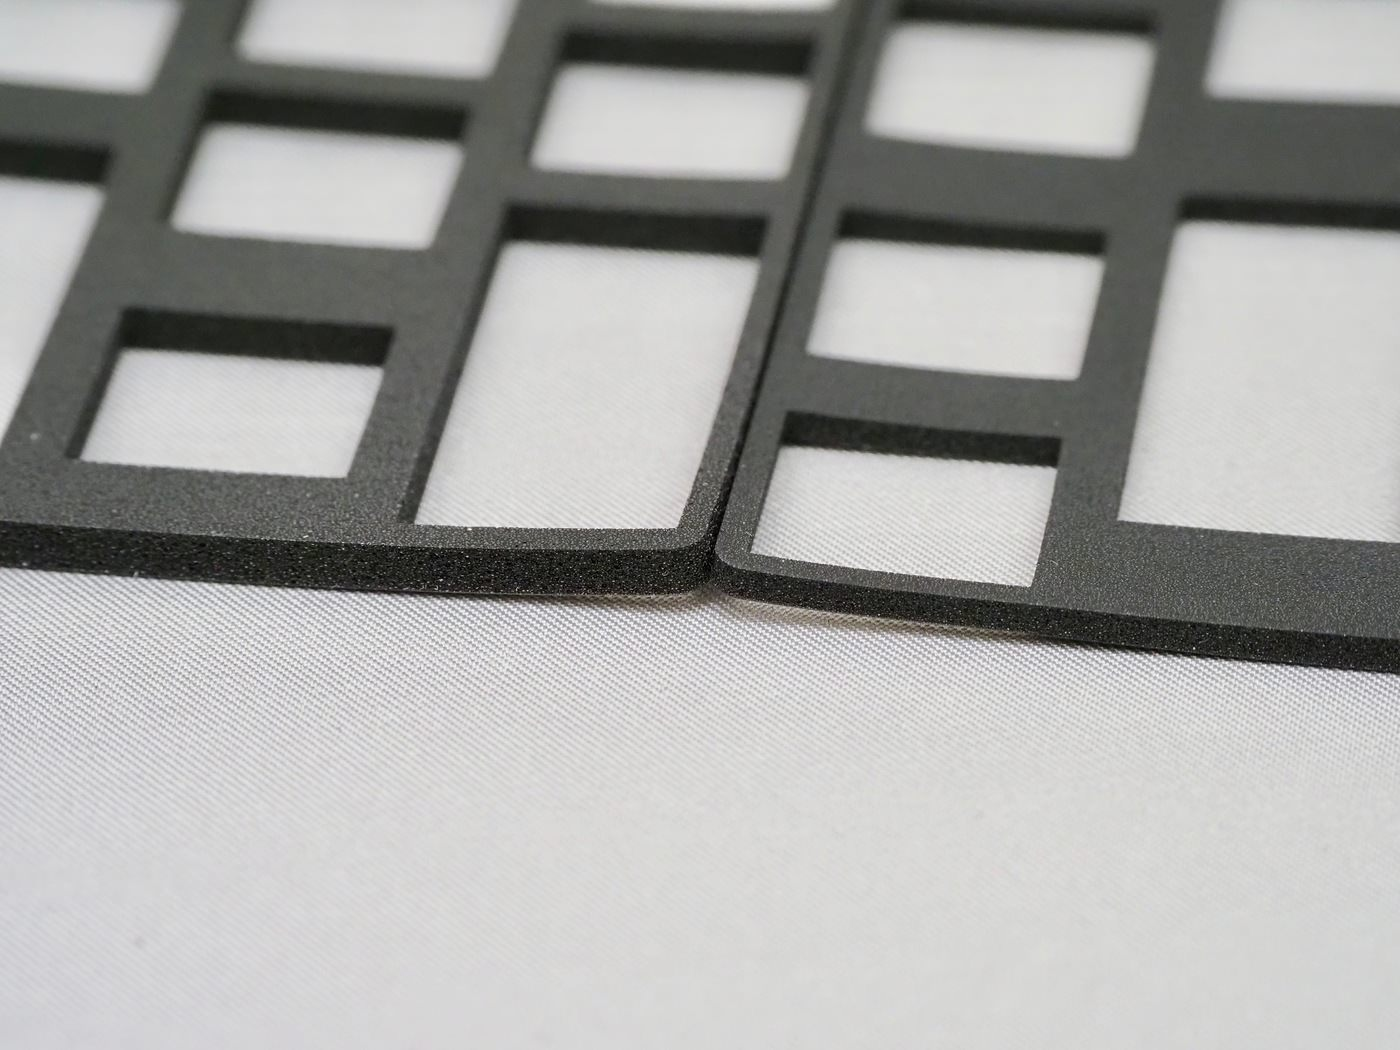 realforce-tkl-for-mac-pfu-limited-edition-review_00035